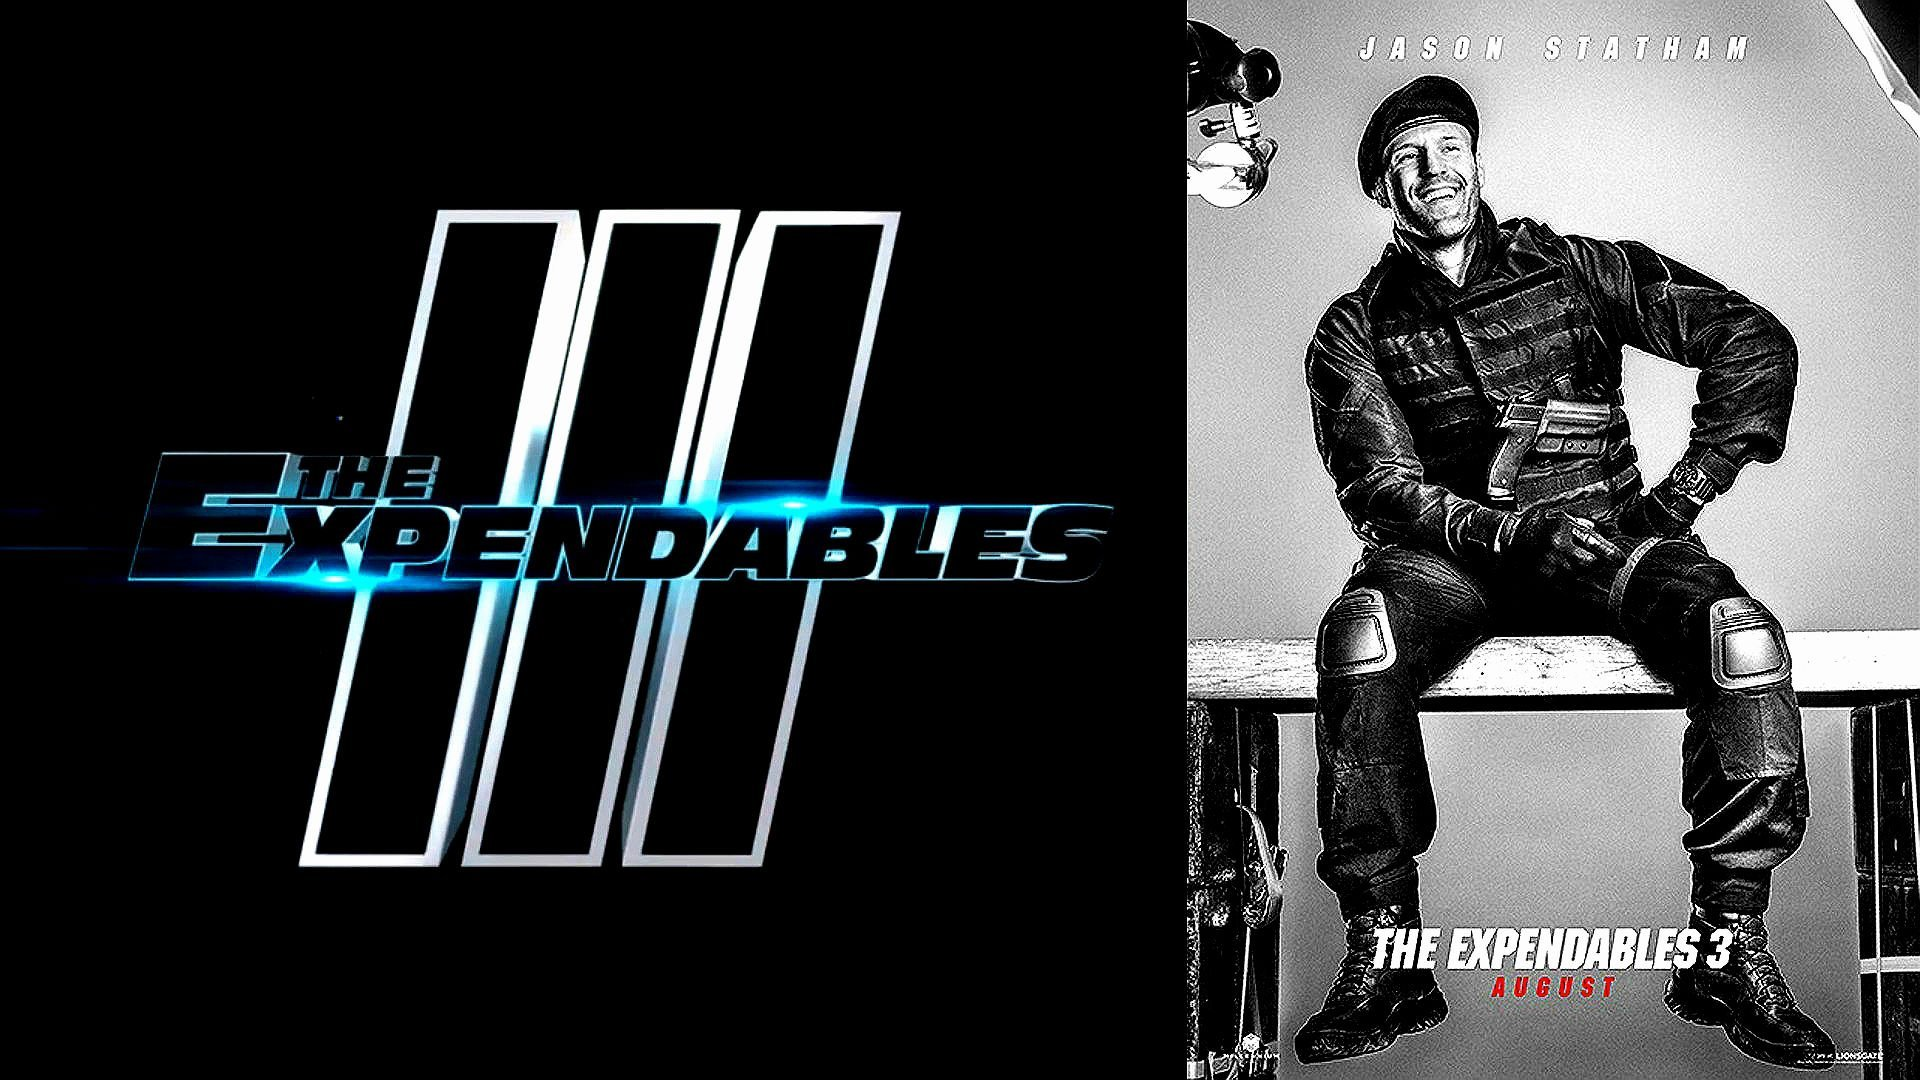 the expendables 3 wallpapers 1920x1080 full hd (1080p) desktop